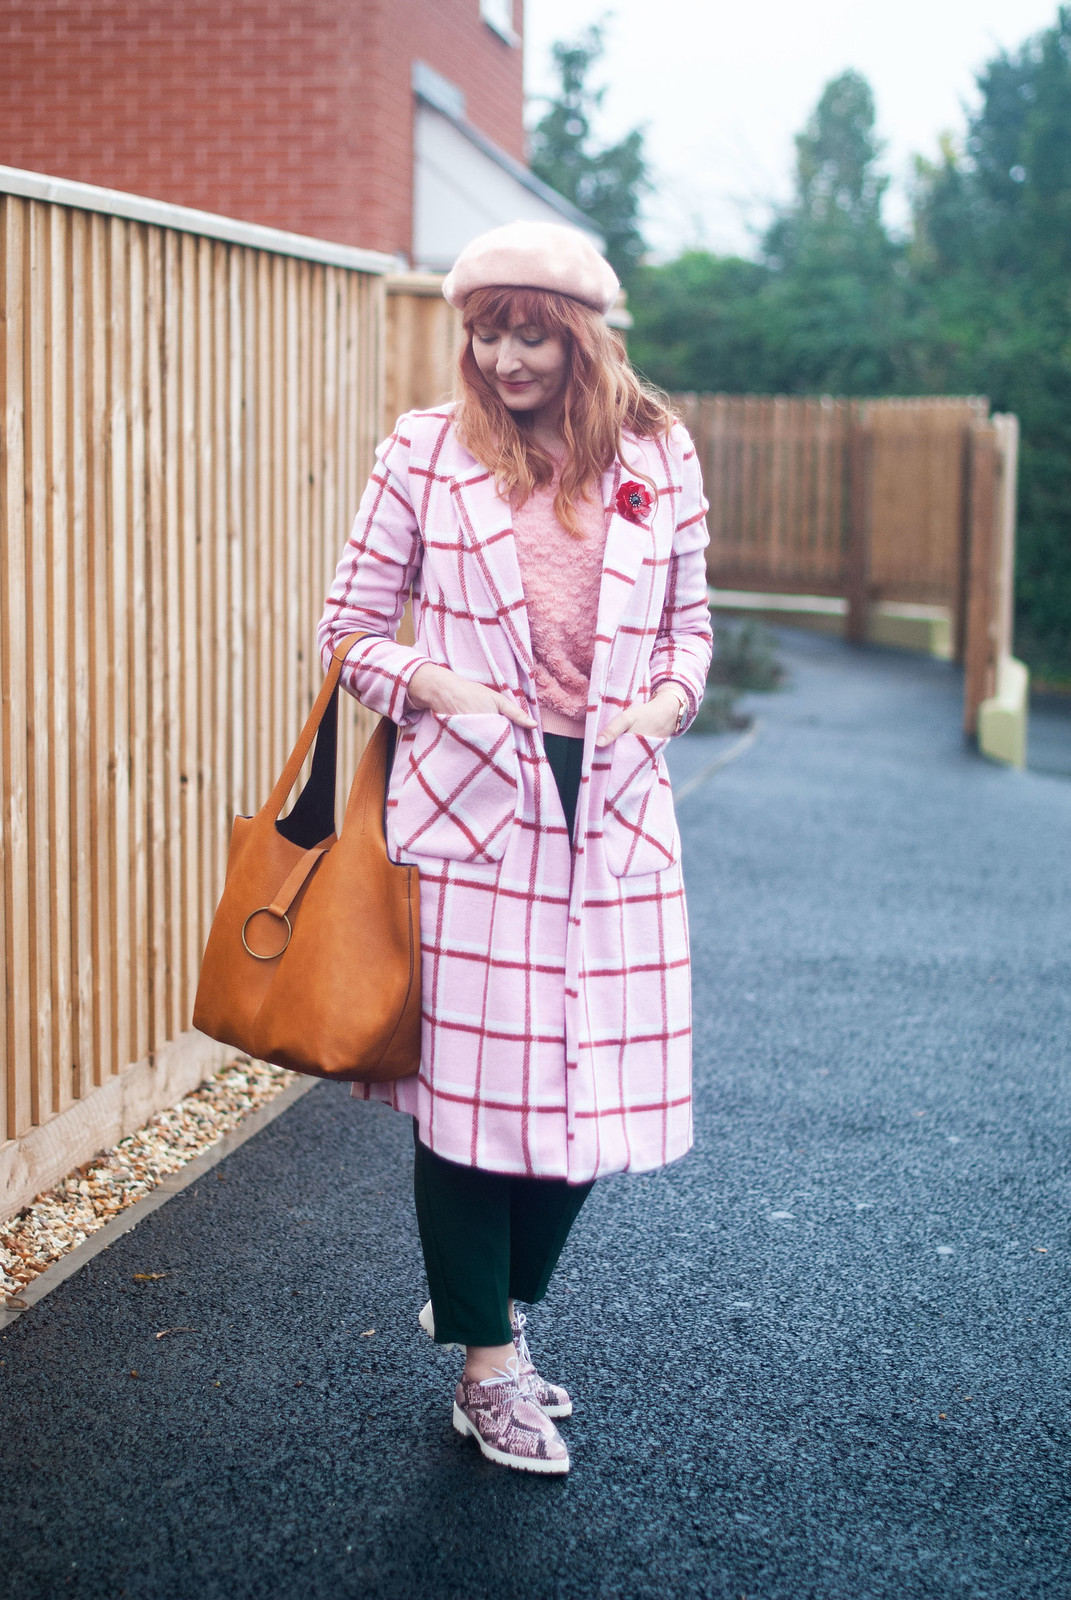 A Pink Check Coat With a Touch of Parisian Chic | Not Dressed As Lamb, style for over 40s